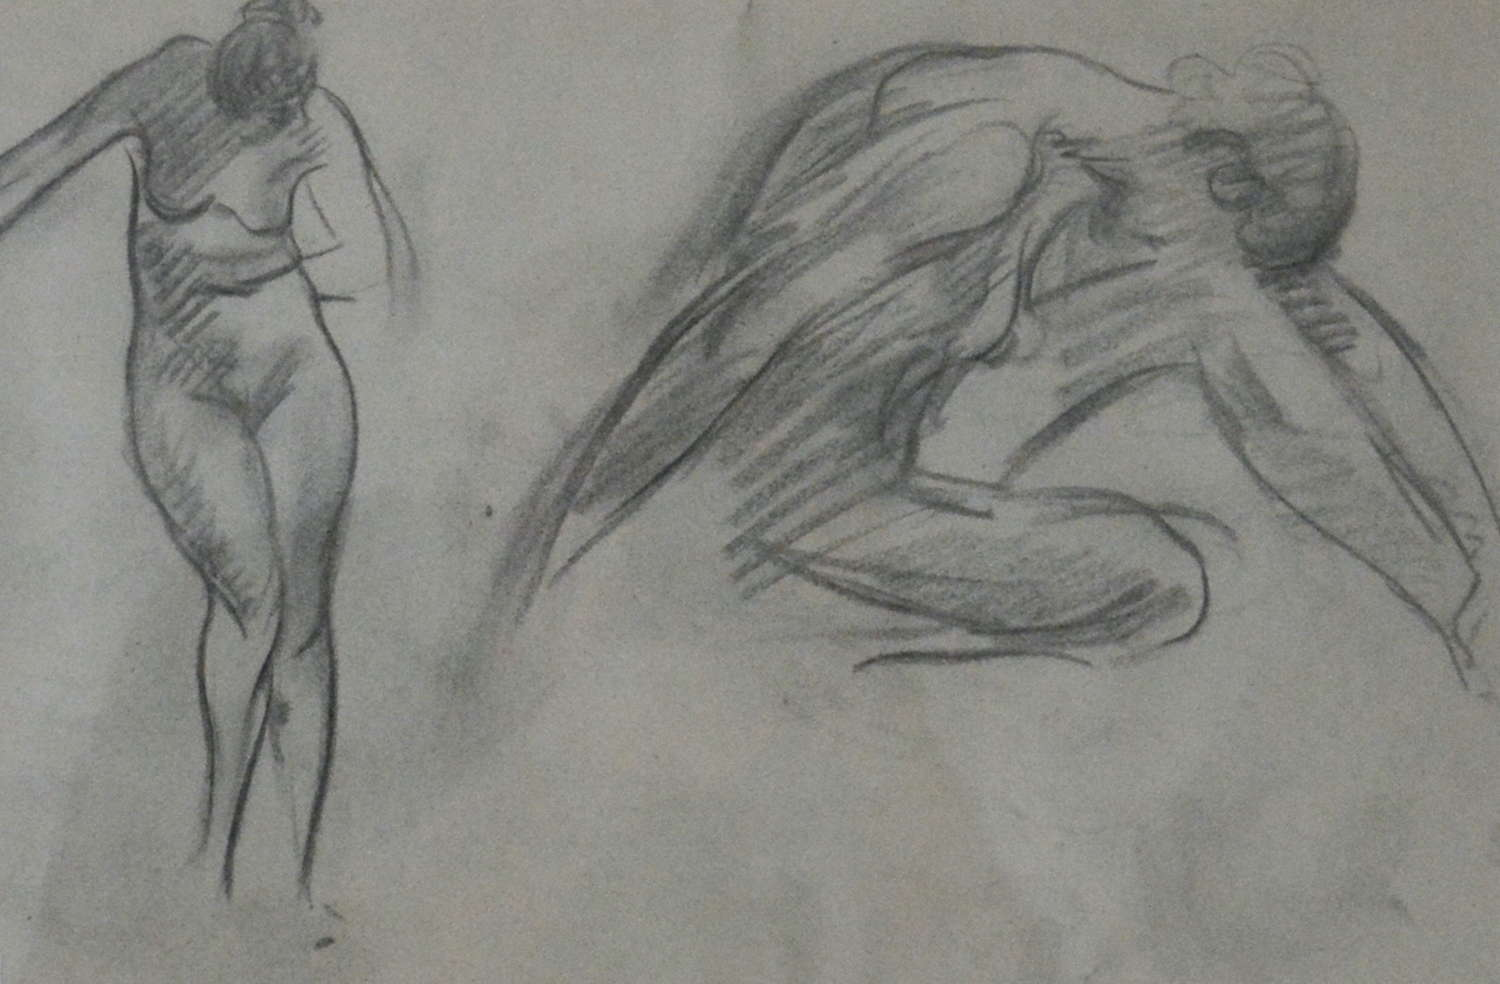 EARLY 20TH CENTURY RENE THOMSEN CHARCOAL STUDIES